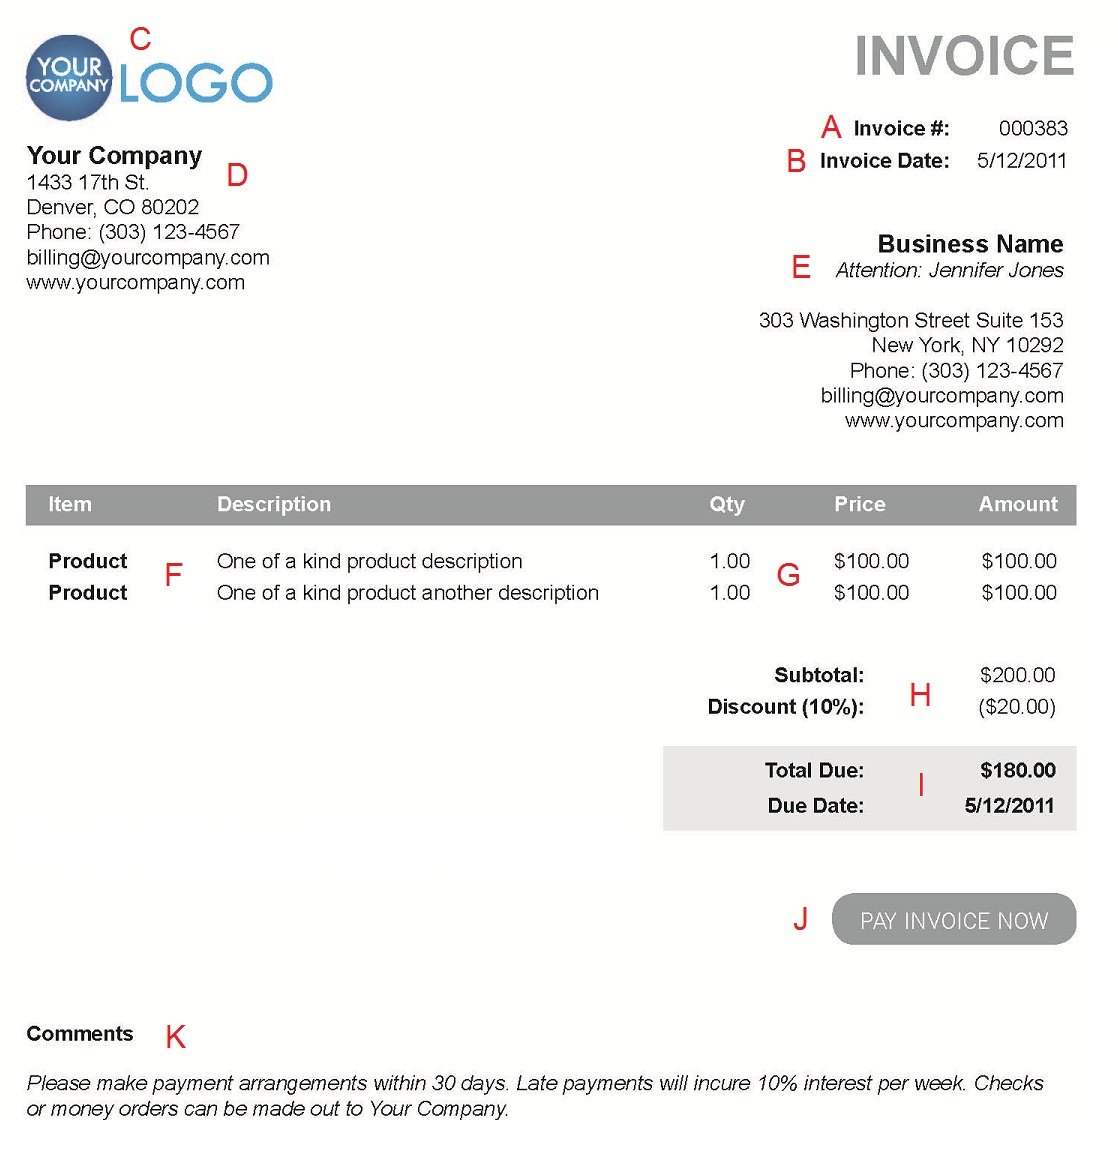 Usdgus  Surprising The  Different Sections Of An Electronic Payment Invoice With Lovable A  With Captivating Invoice Pdf Also Paypal Send Invoice In Addition Invoice Cloud And Paypal Invoice Safe As Well As Free Invoice Template Pdf Additionally Invoice To Me From Paysimplecom With Usdgus  Lovable The  Different Sections Of An Electronic Payment Invoice With Captivating A  And Surprising Invoice Pdf Also Paypal Send Invoice In Addition Invoice Cloud From Paysimplecom